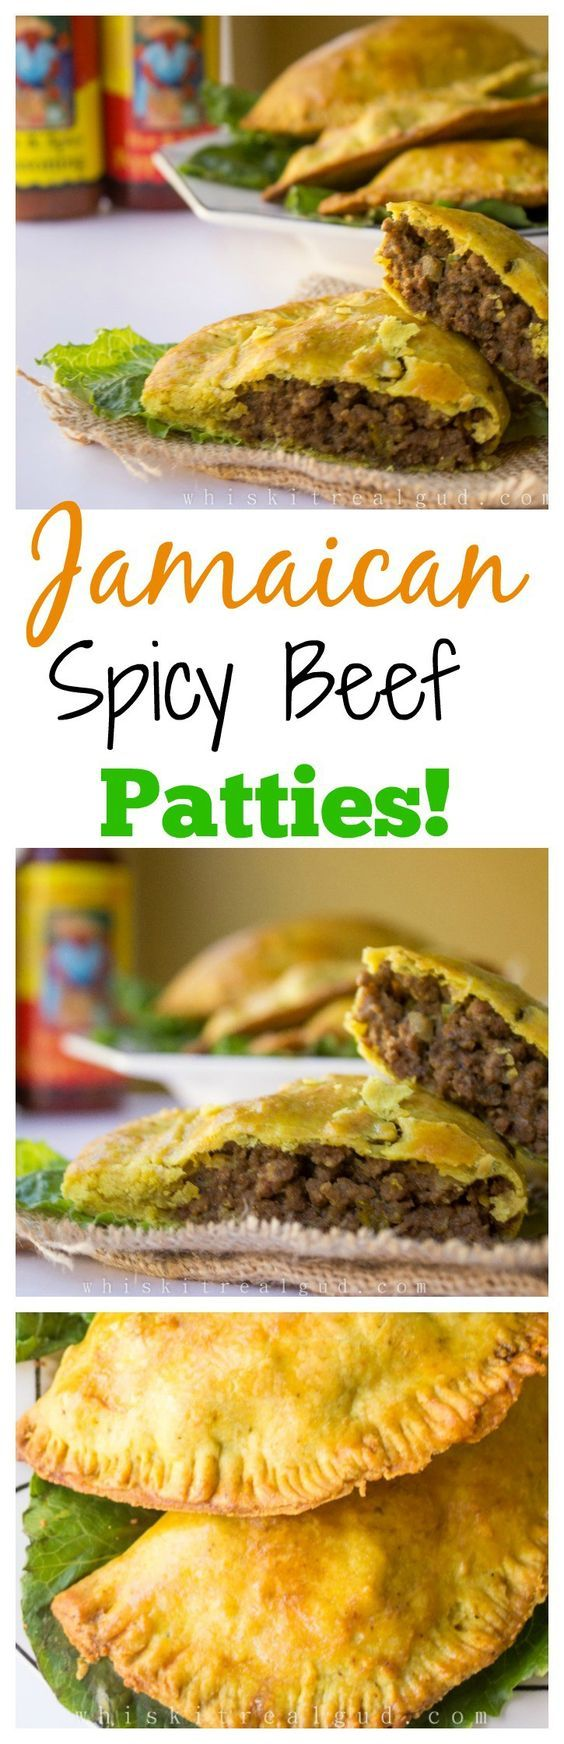 Although I loved Dominican Republic, I couldn't wait to get back home and eat some good homemade food. I've always loved Jamaican beef patties ever since I was a kid. My mom would buy t…: